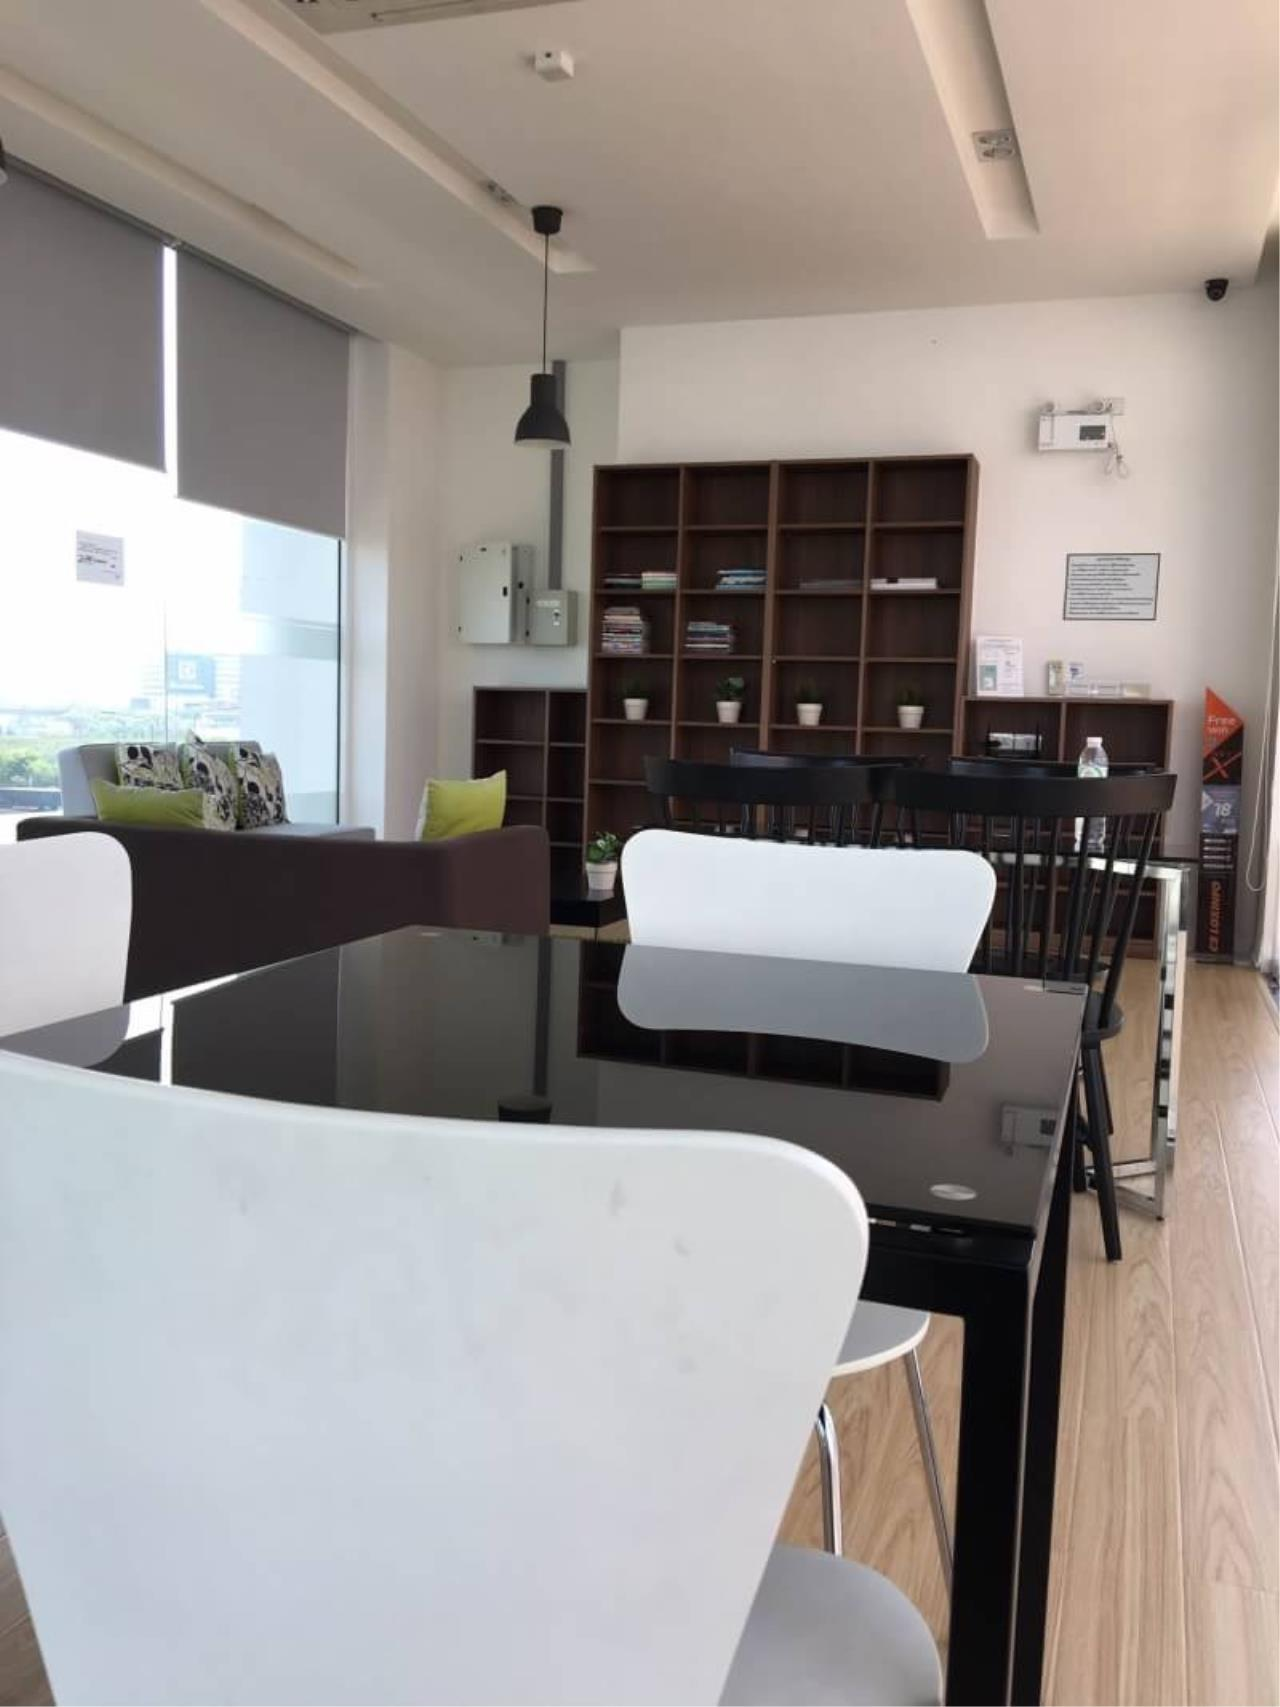 RE/MAX All Star Realty Agency's TC Green Condo for rent (MRT Phra Ram9) 9